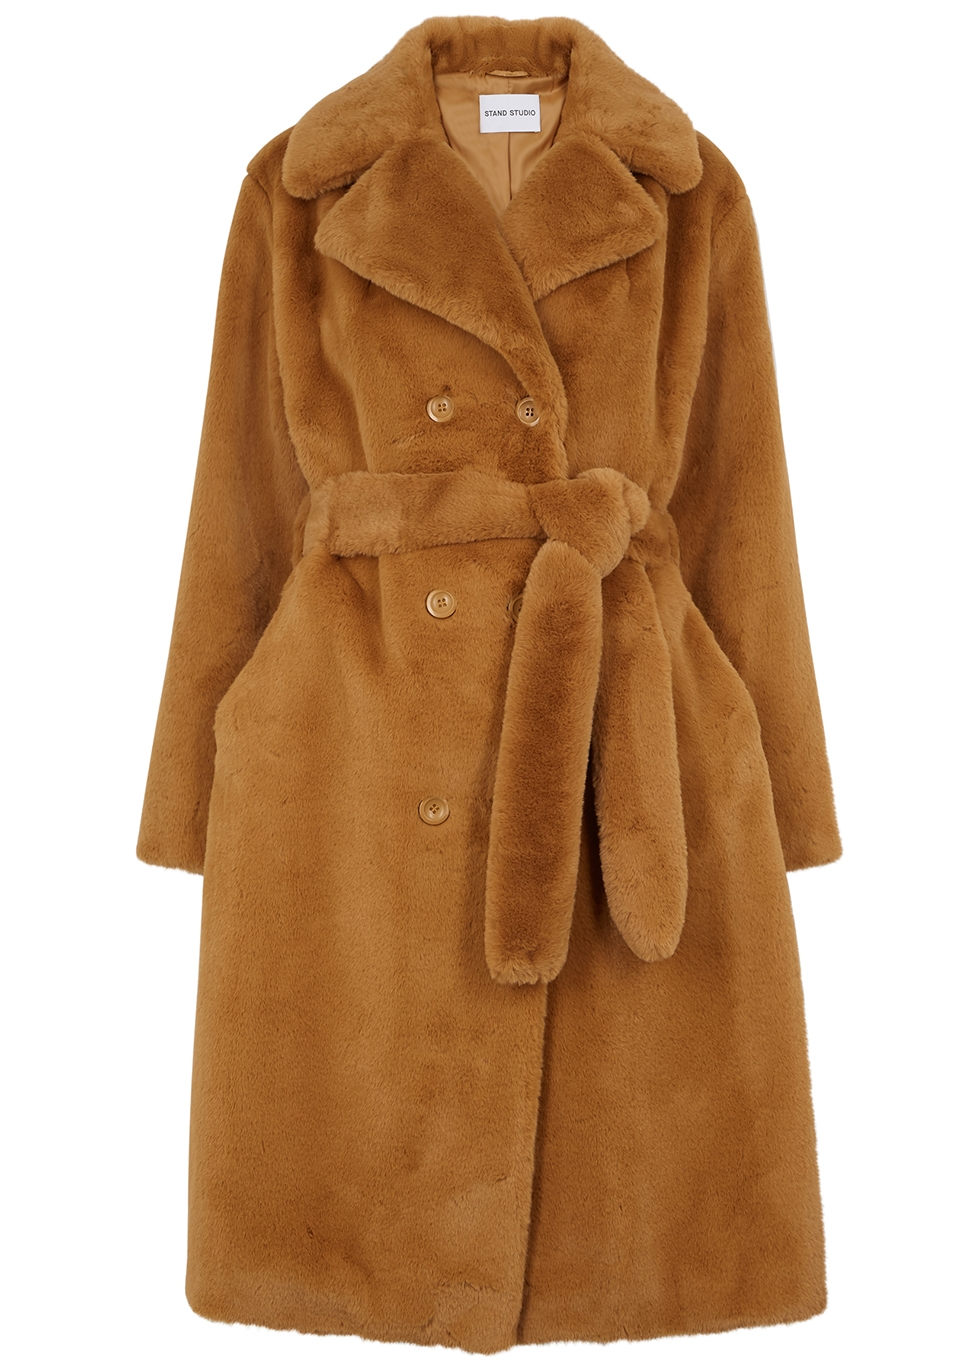 Faustine brown faux fur coat